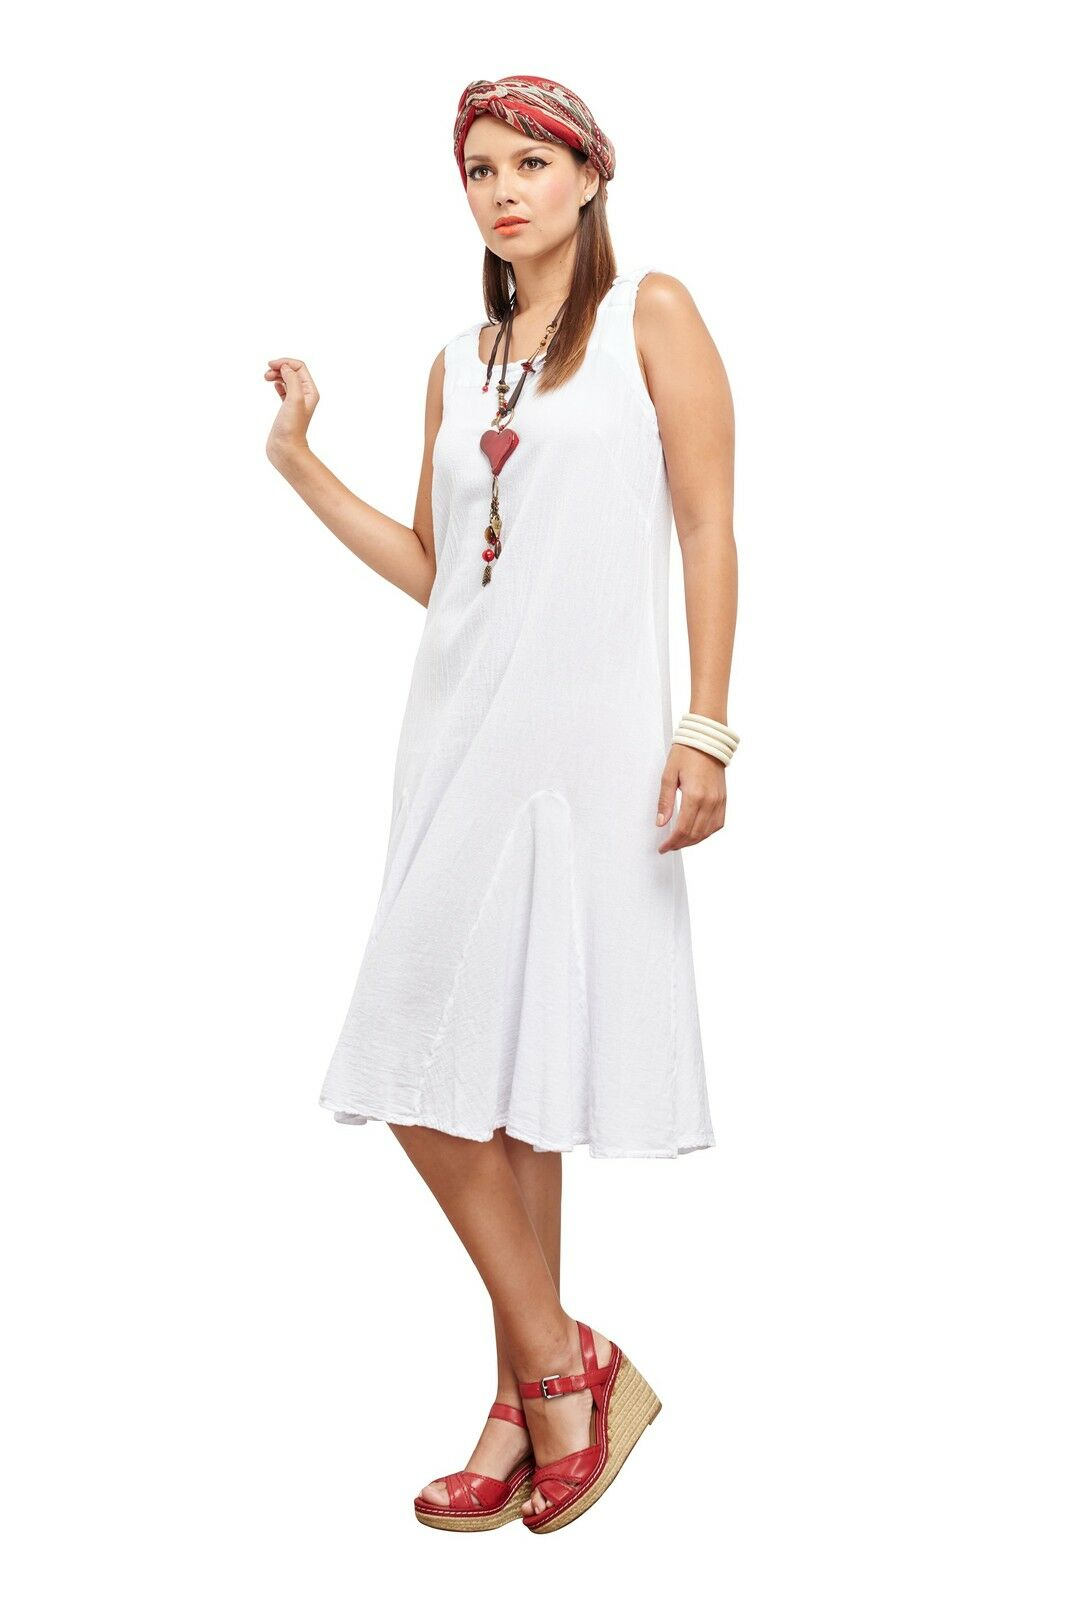 Oh My Gauze Lucy Dress Lagenlook Casual 100% 100% 100% Cotton 7c29a2